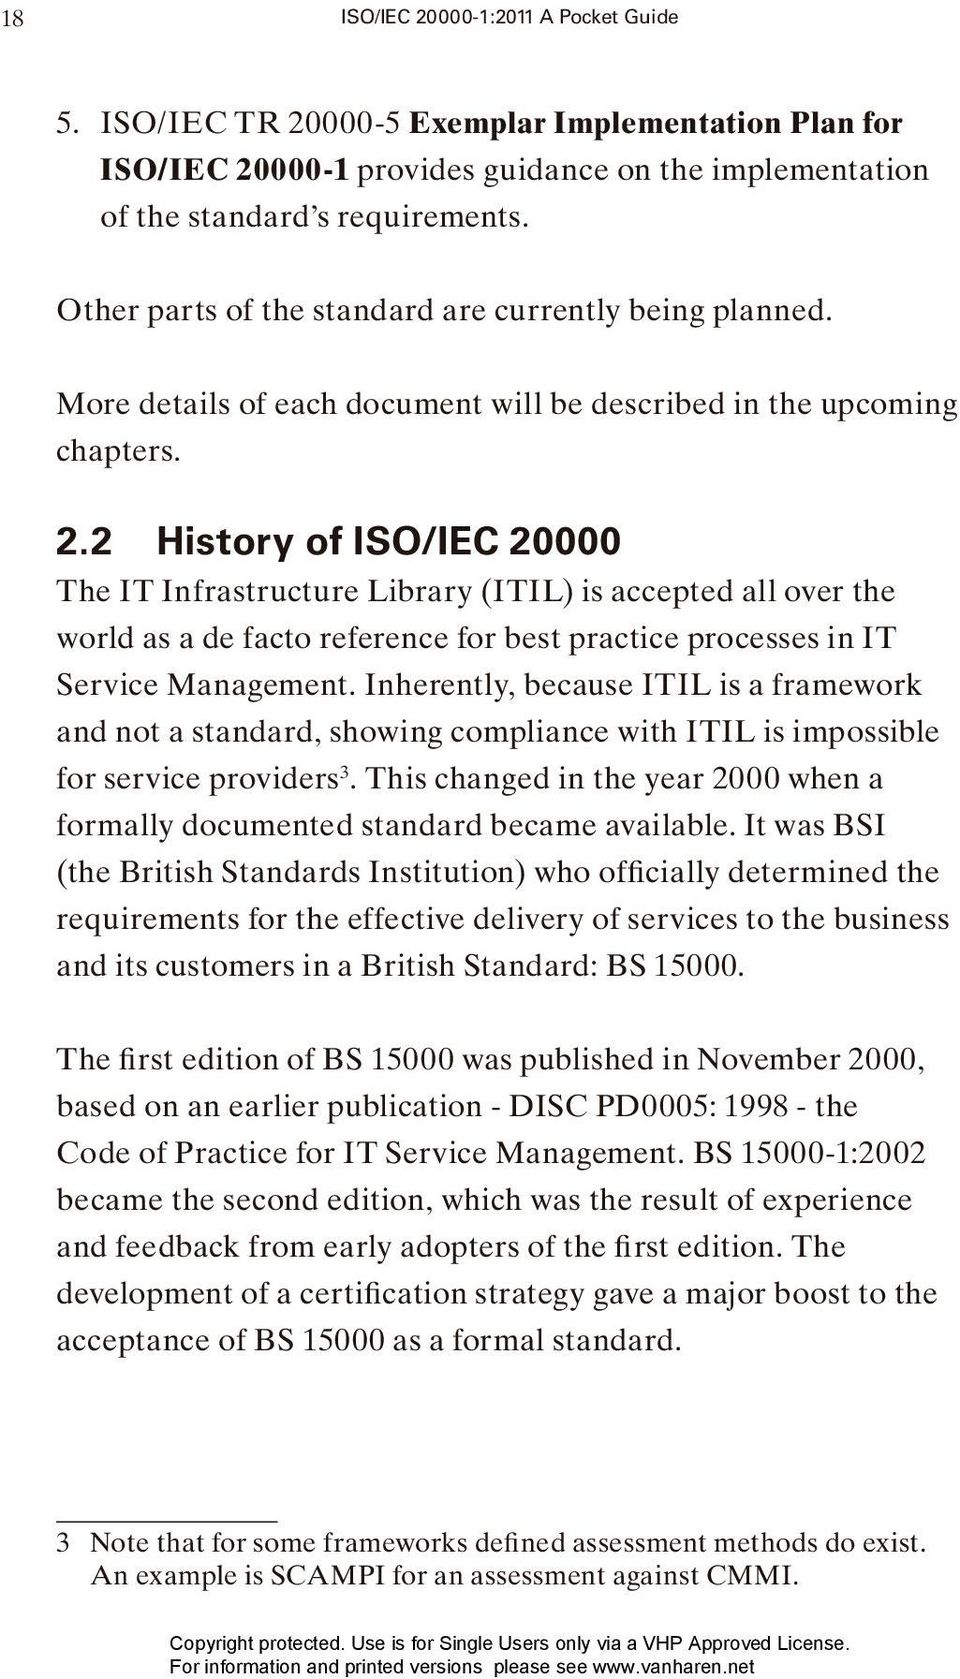 2 History of ISO/IEC 20000 The IT Infrastructure Library (ITIL) is accepted all over the world as a de facto reference for best practice processes in IT Service Management.